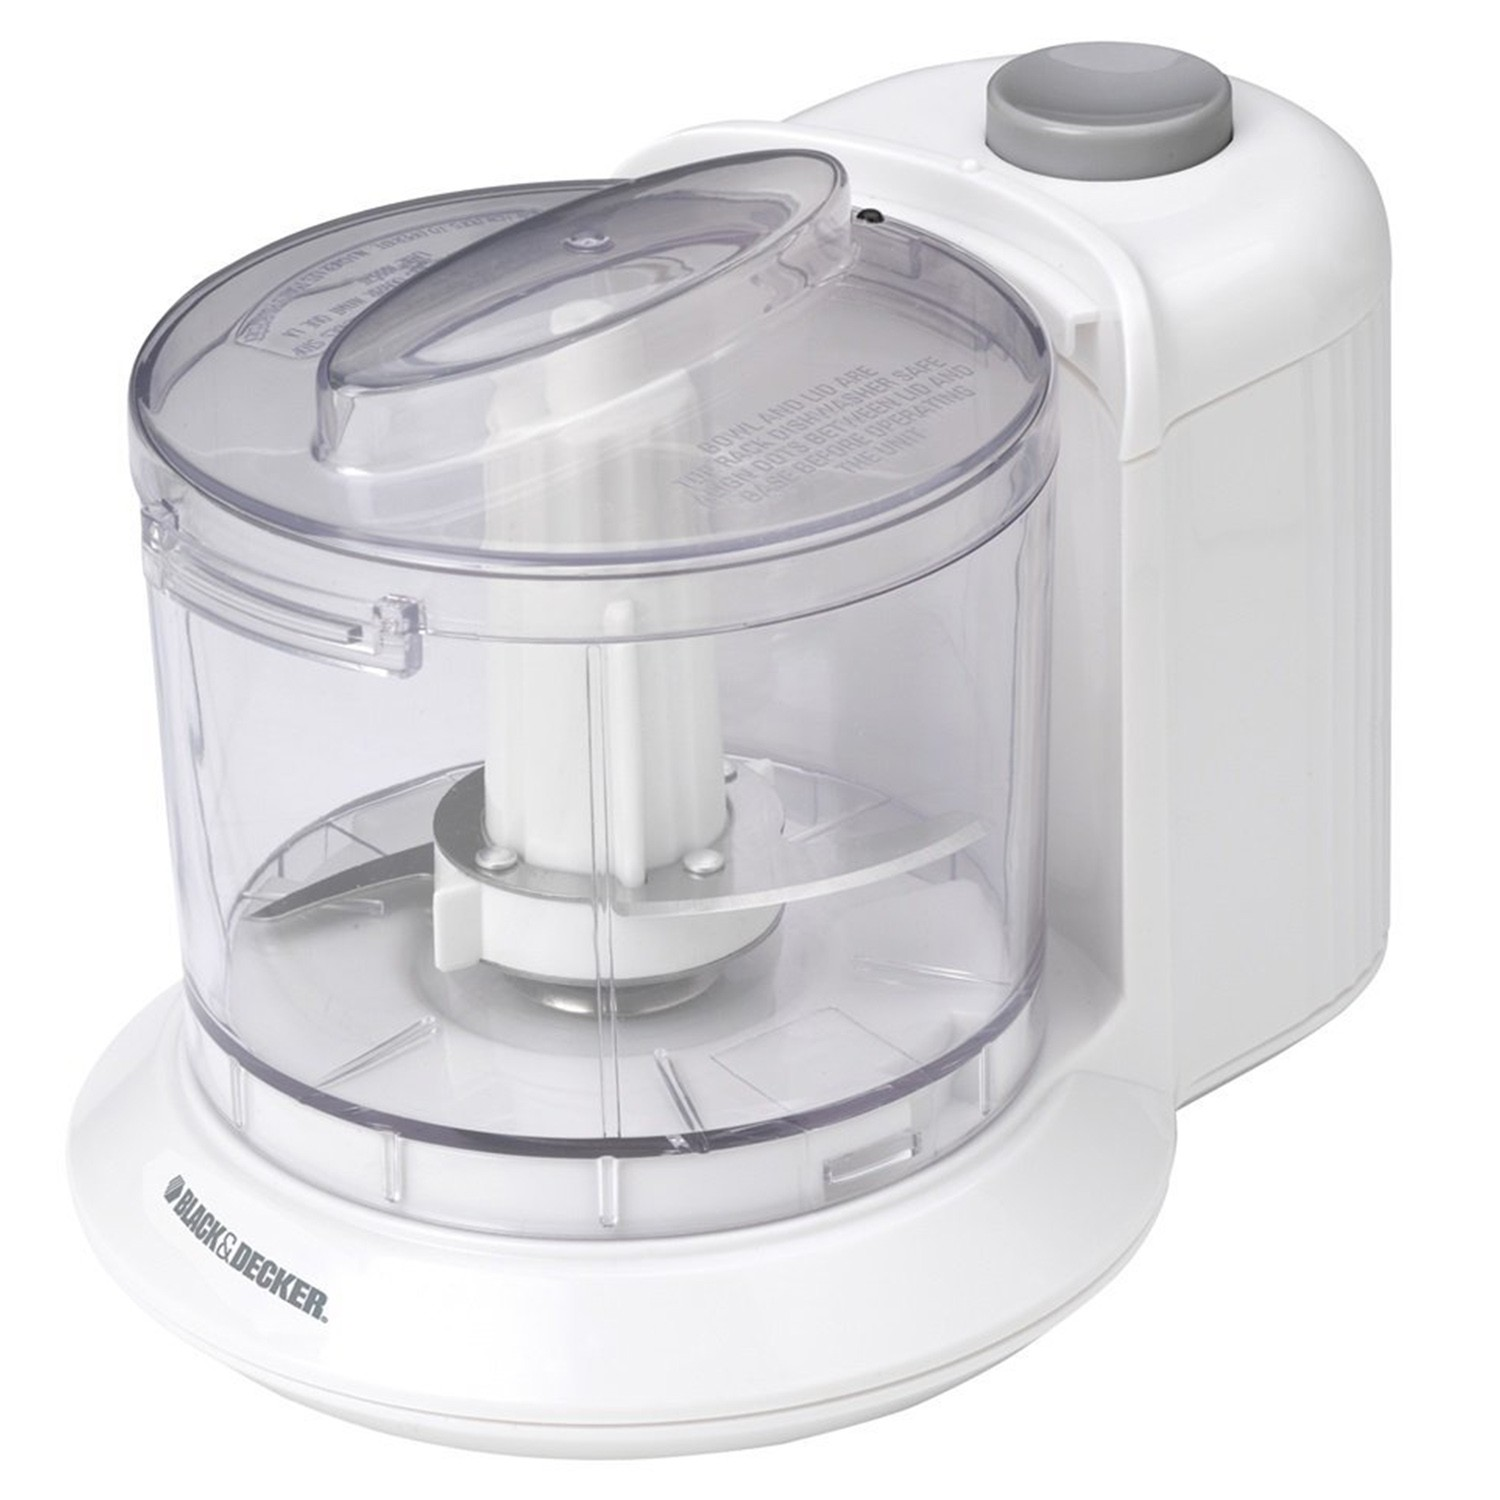 BLACK and DECKER One -Touch Electric Veggie Chopper